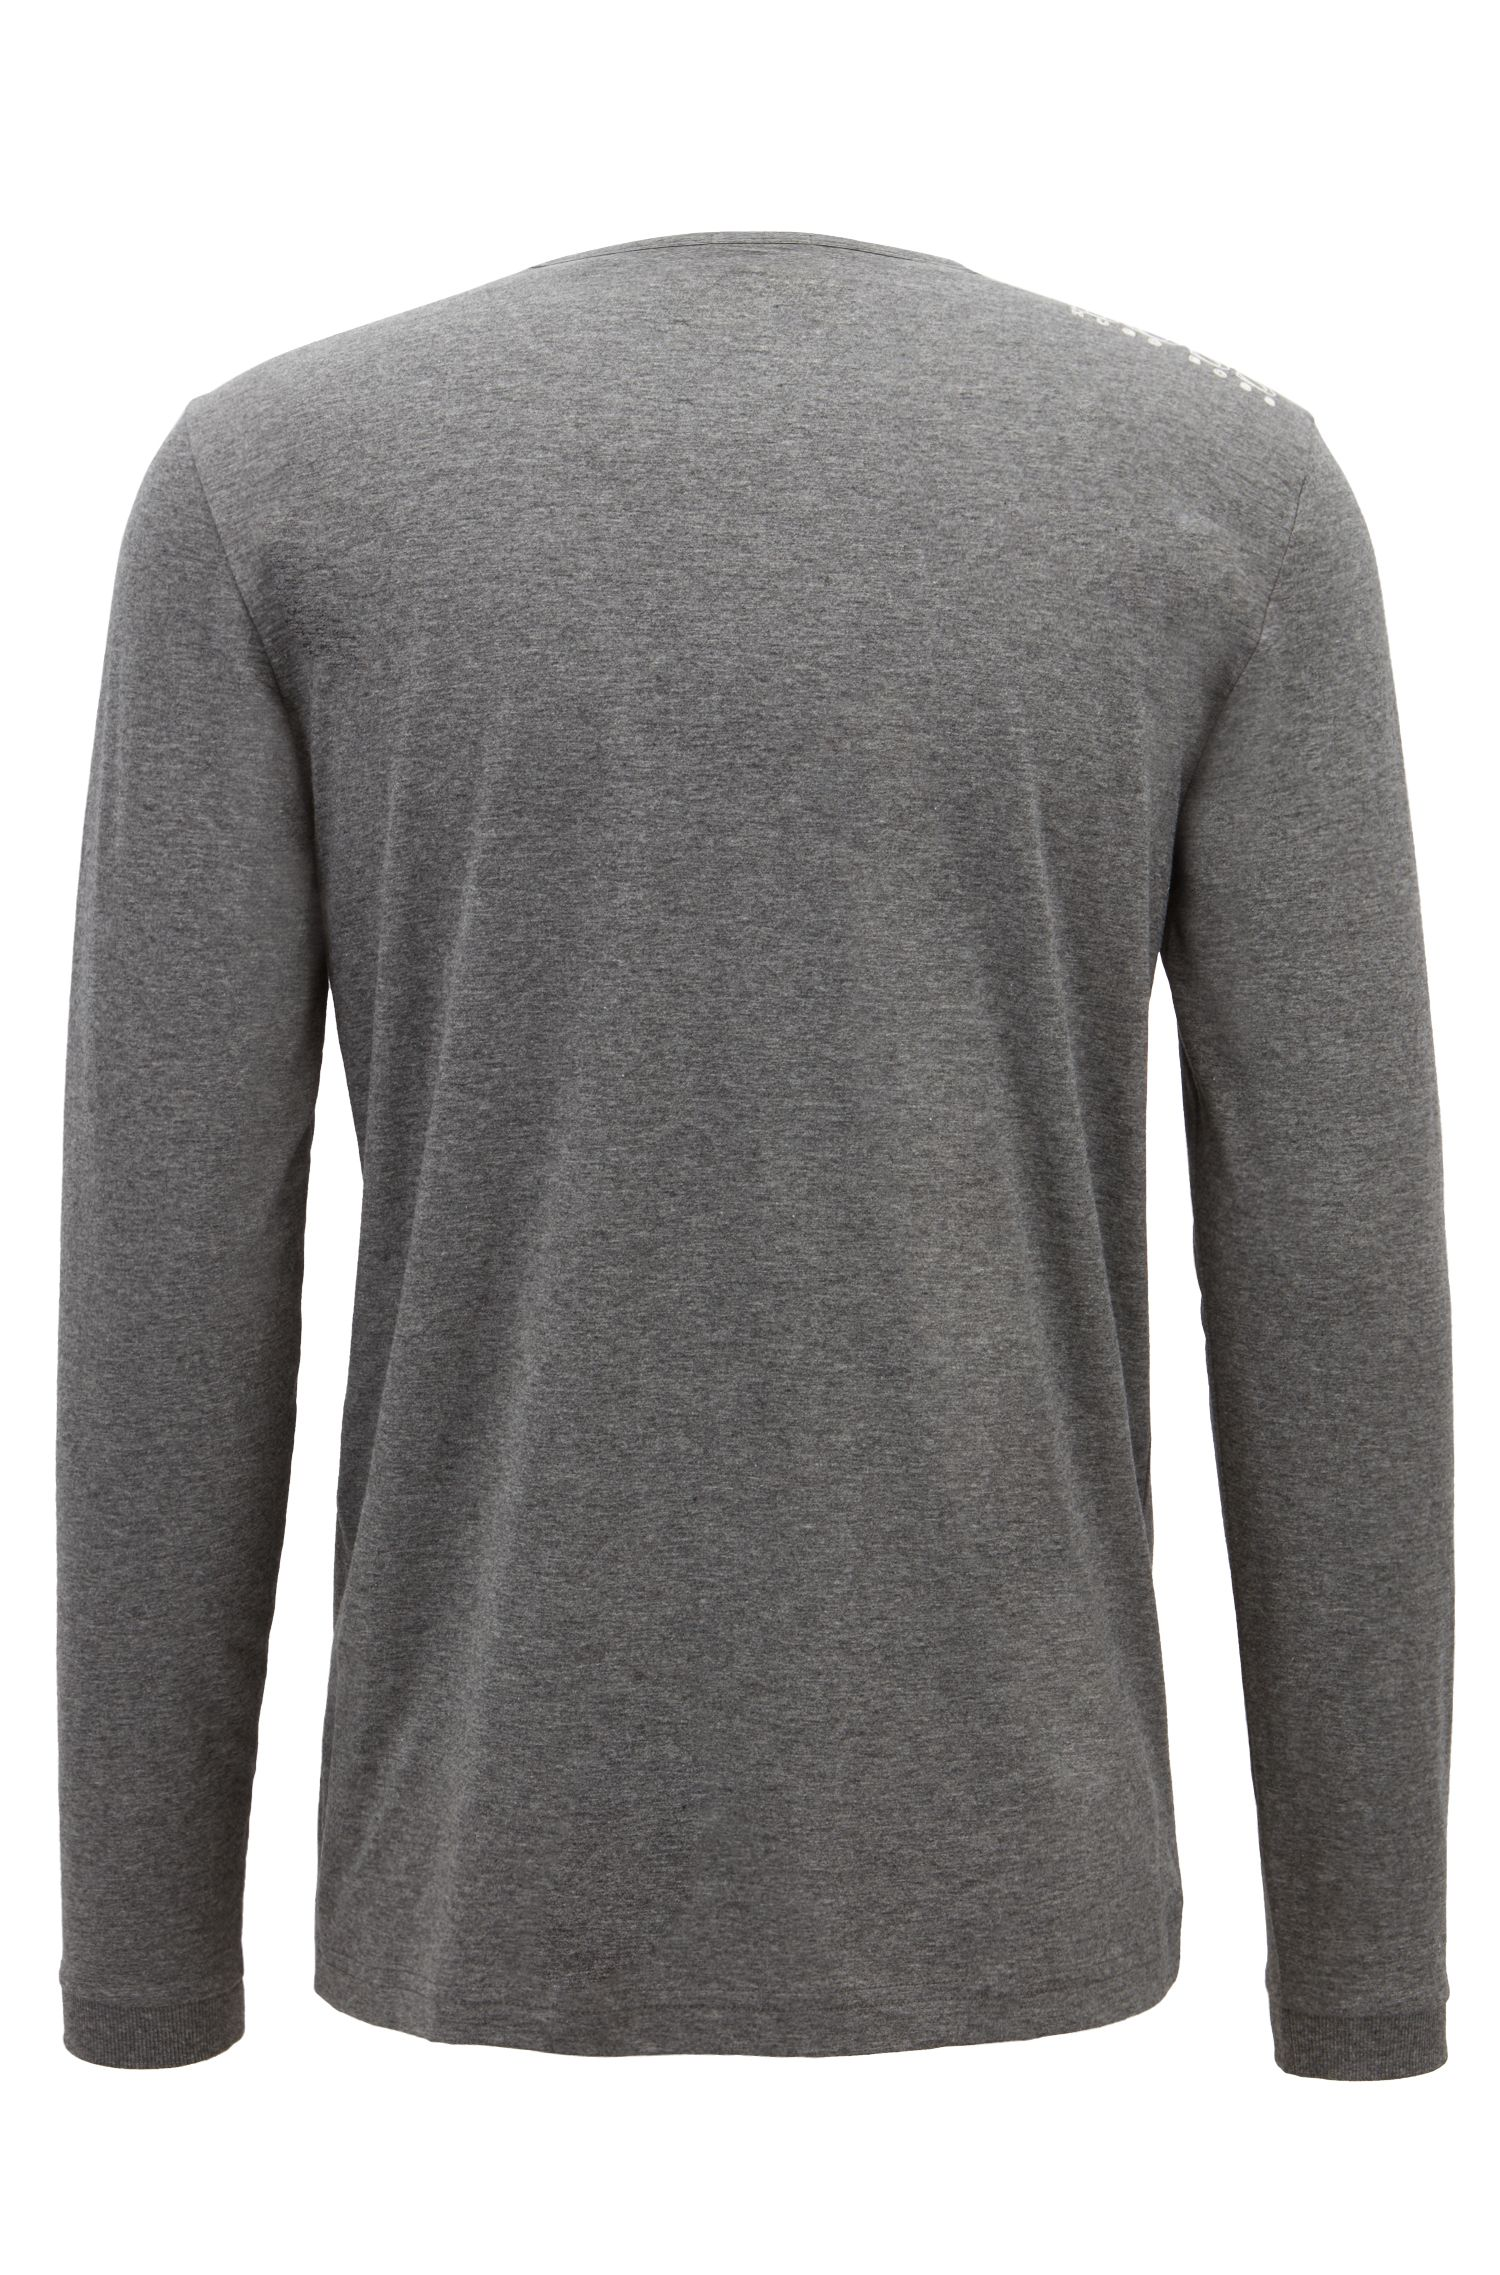 Long-sleeved cotton T-shirt with shoulder logo, Grey